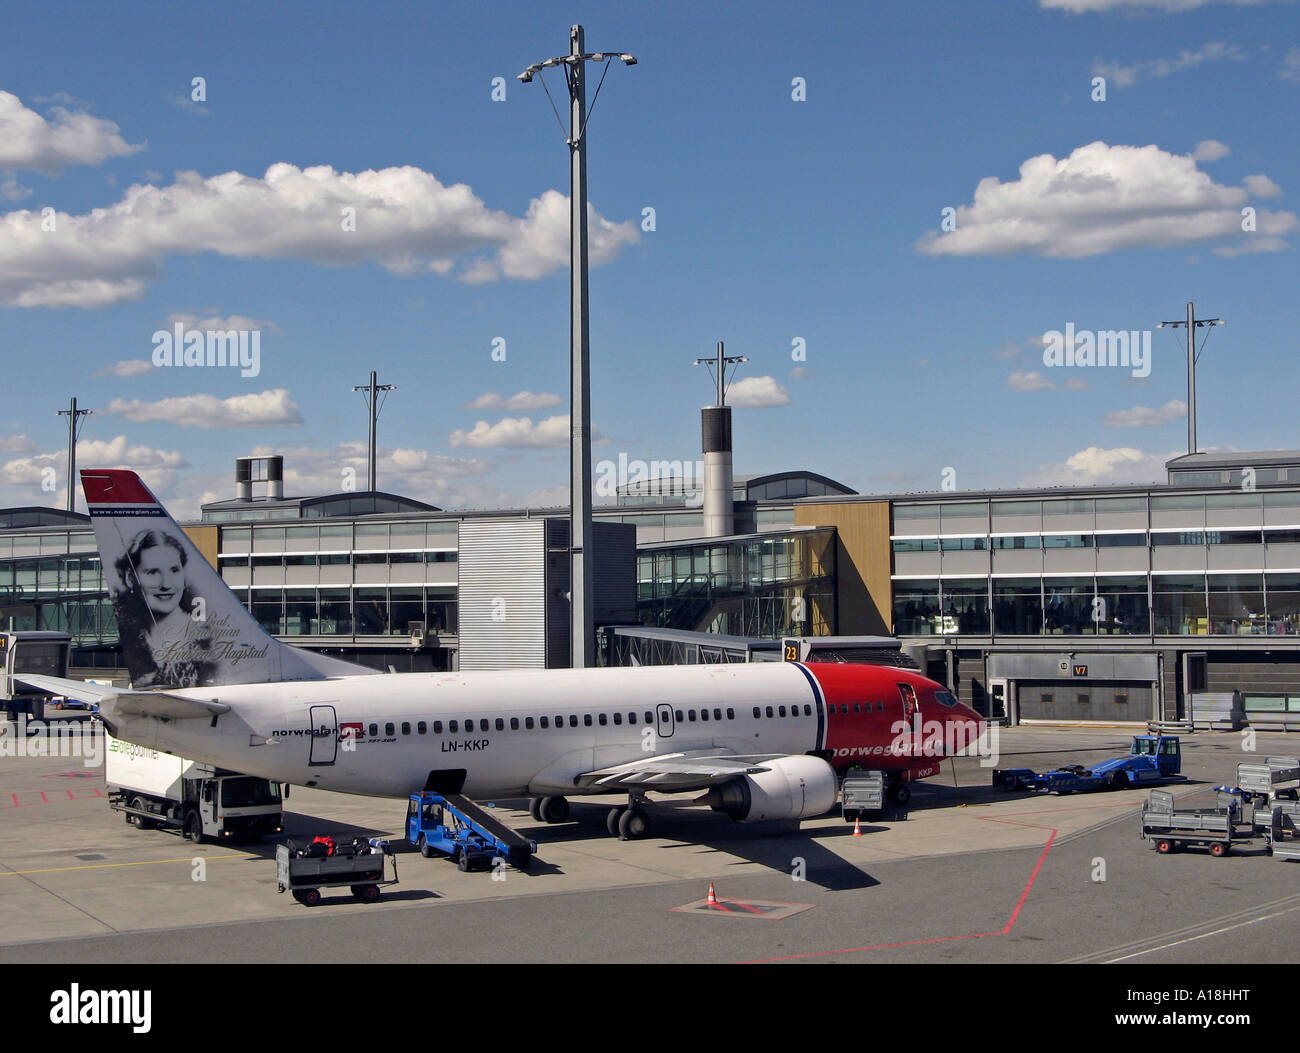 Servicing an air plane at Oslo Airport Gardermoen, OSL, located in Ullensaker, Norway Stock Photo